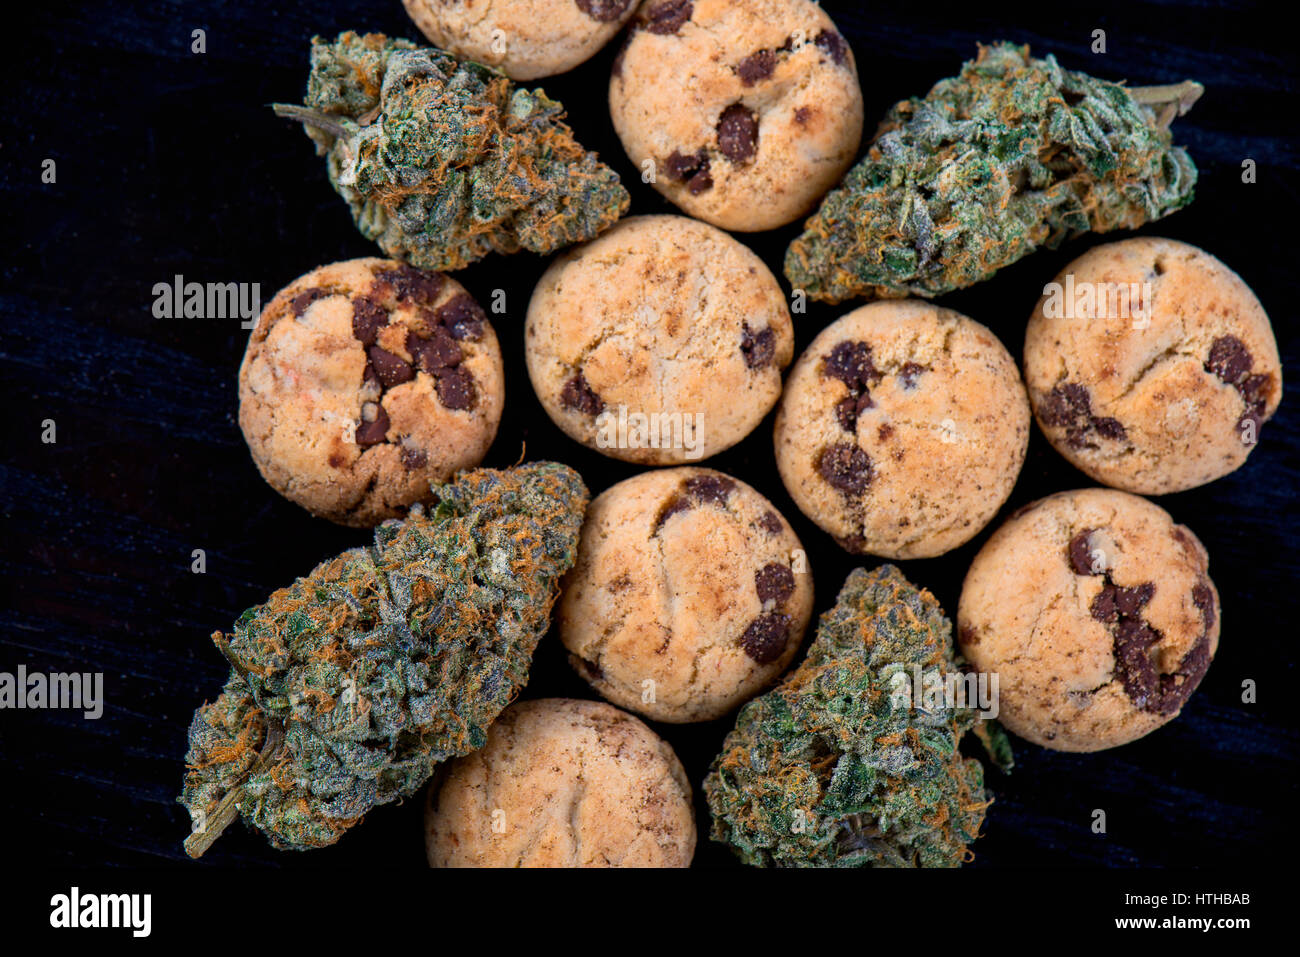 Background with cannabis nugs (forum cut cookies strain) and